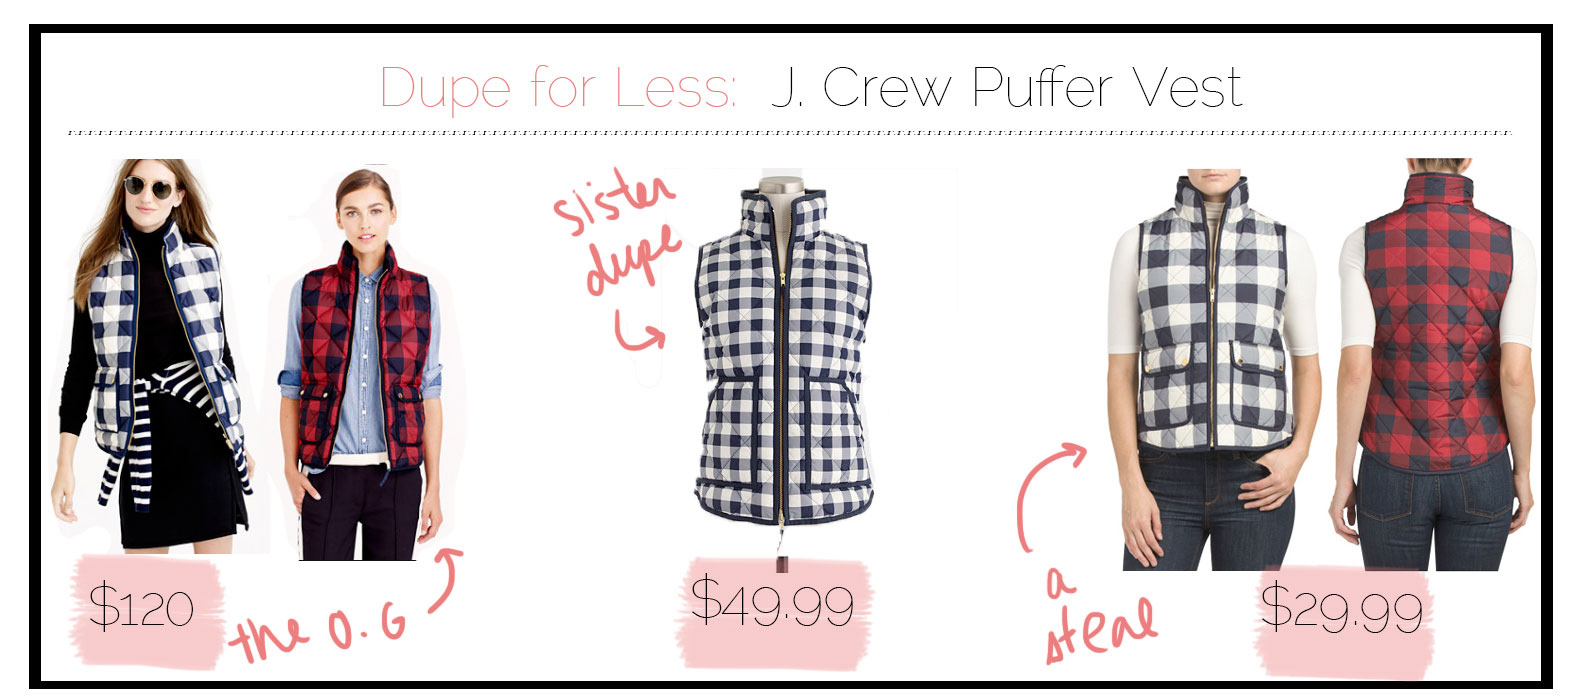 Cheaper versions of J crew buffalo plaid puffer vest